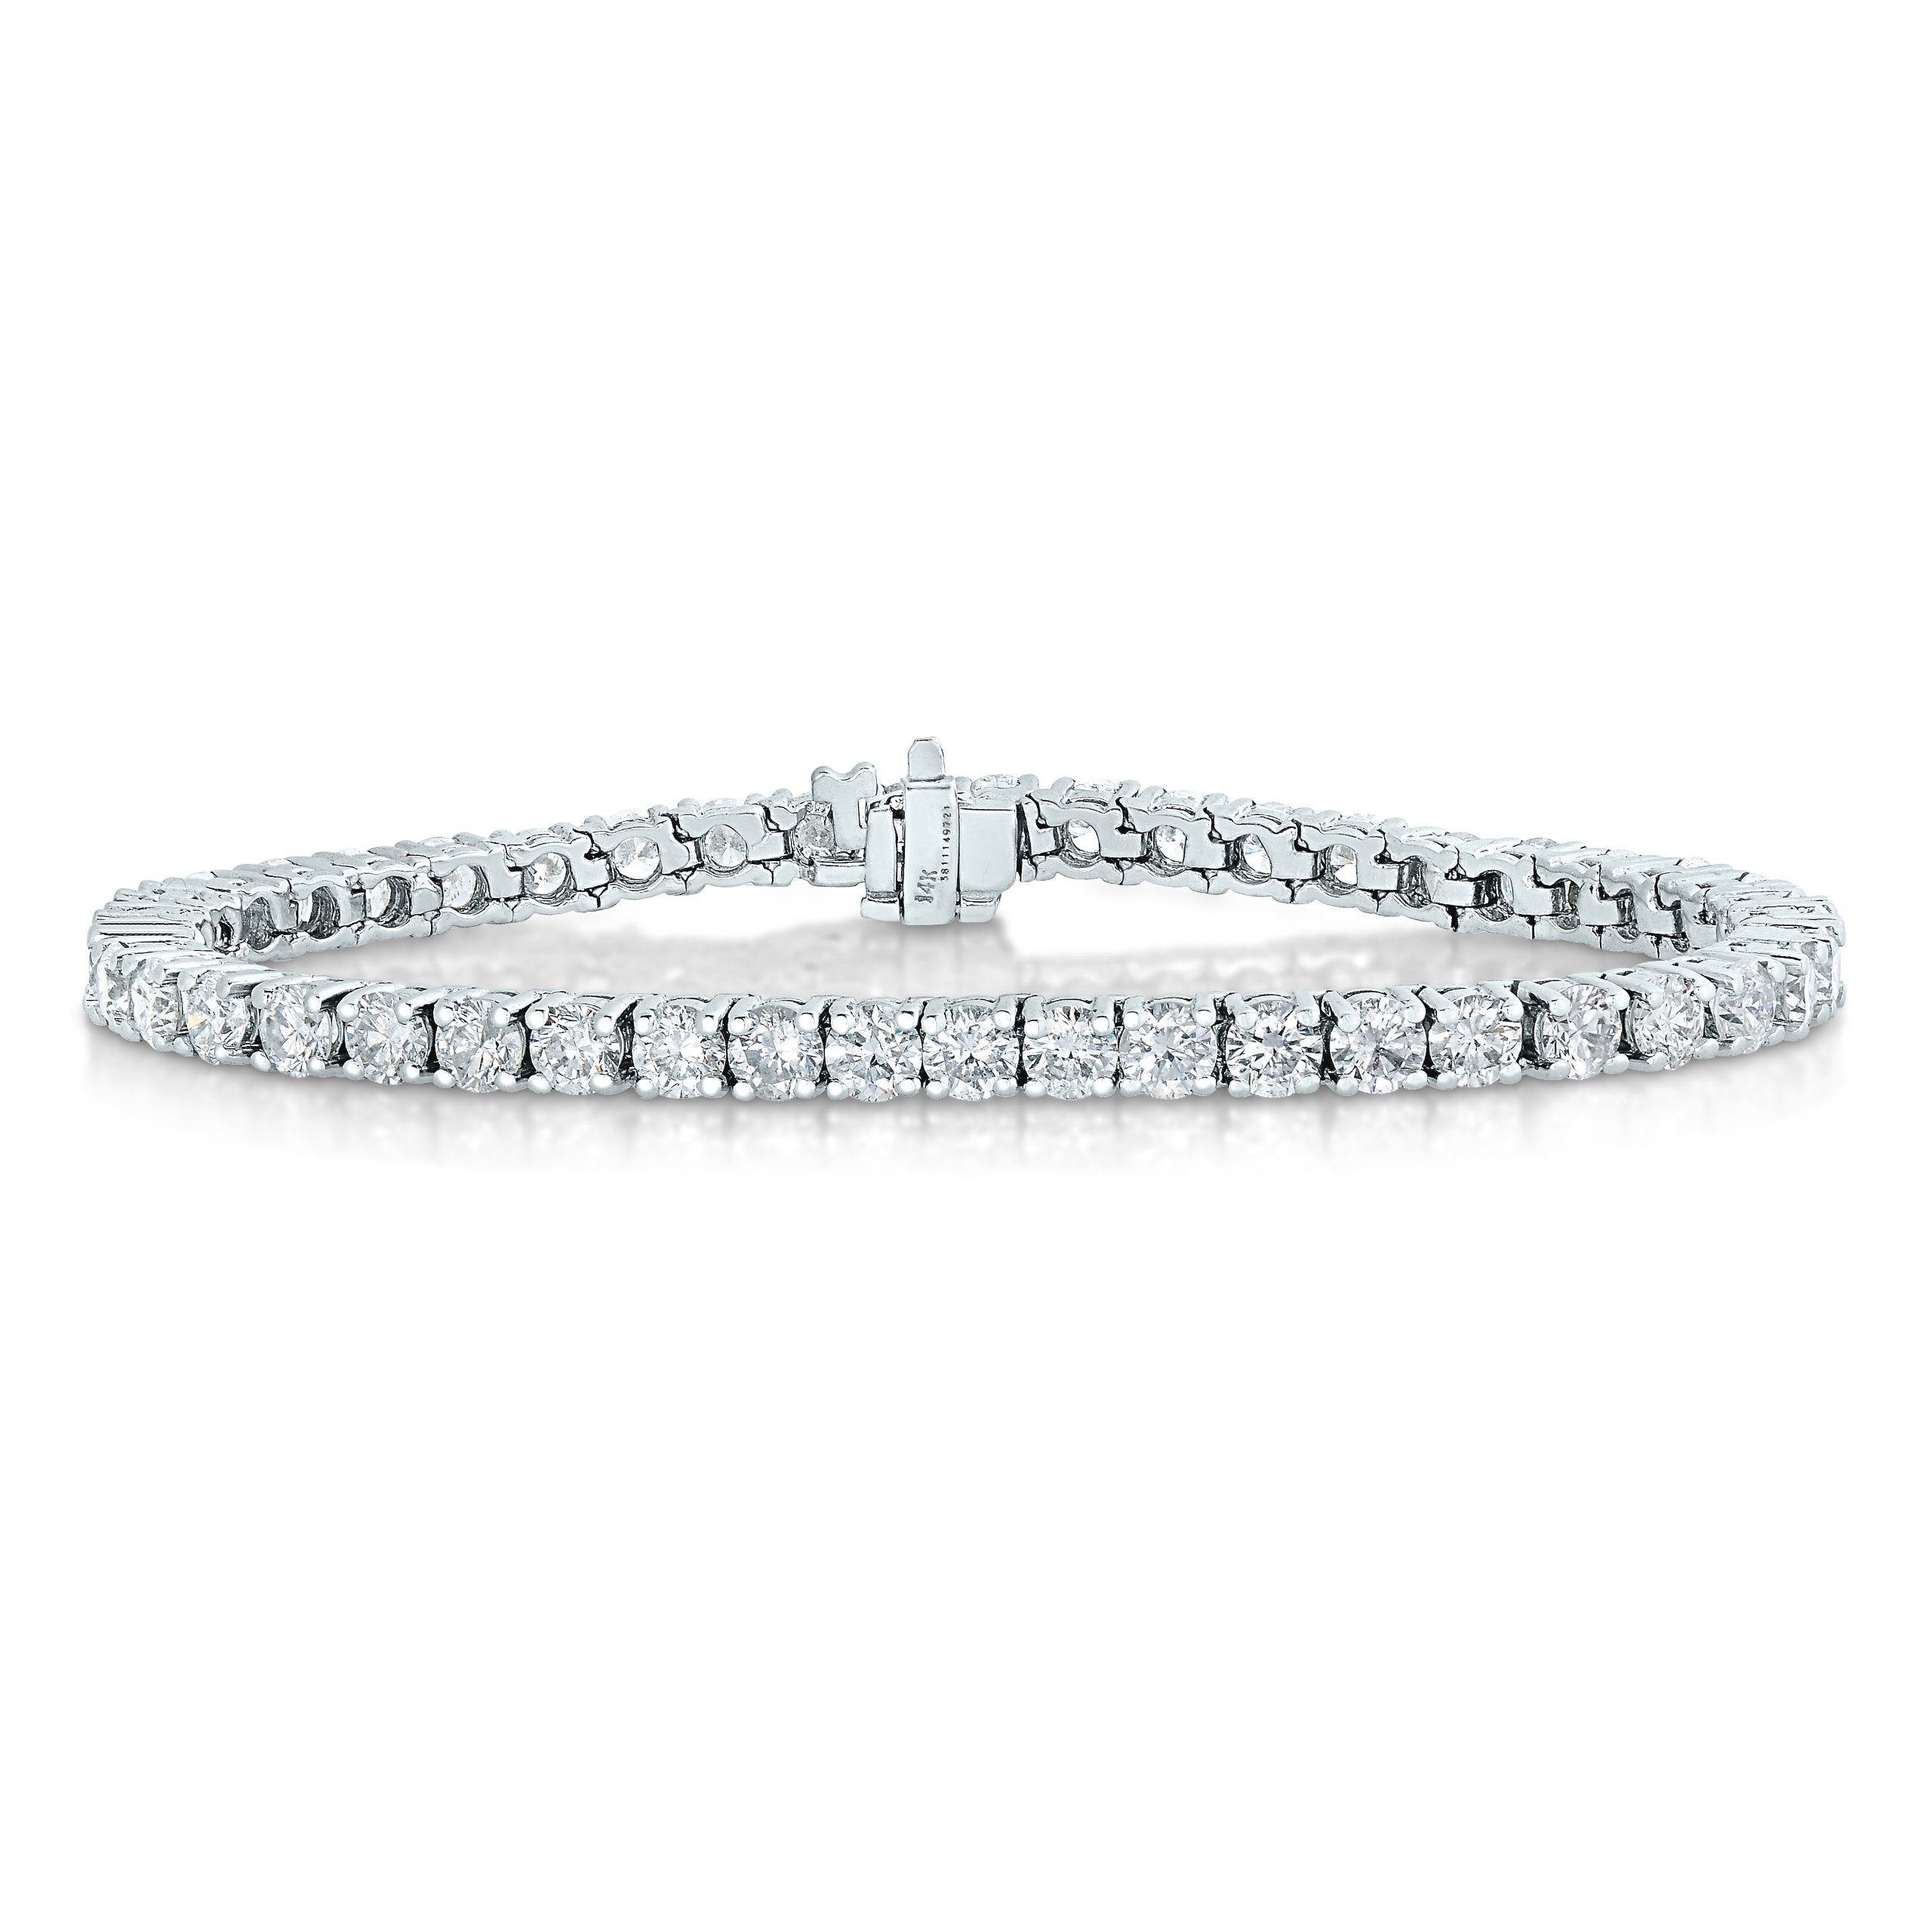 5 CT I1 IGI Certified Diamond Bracelet Tennis 14K White Gold (H-I)